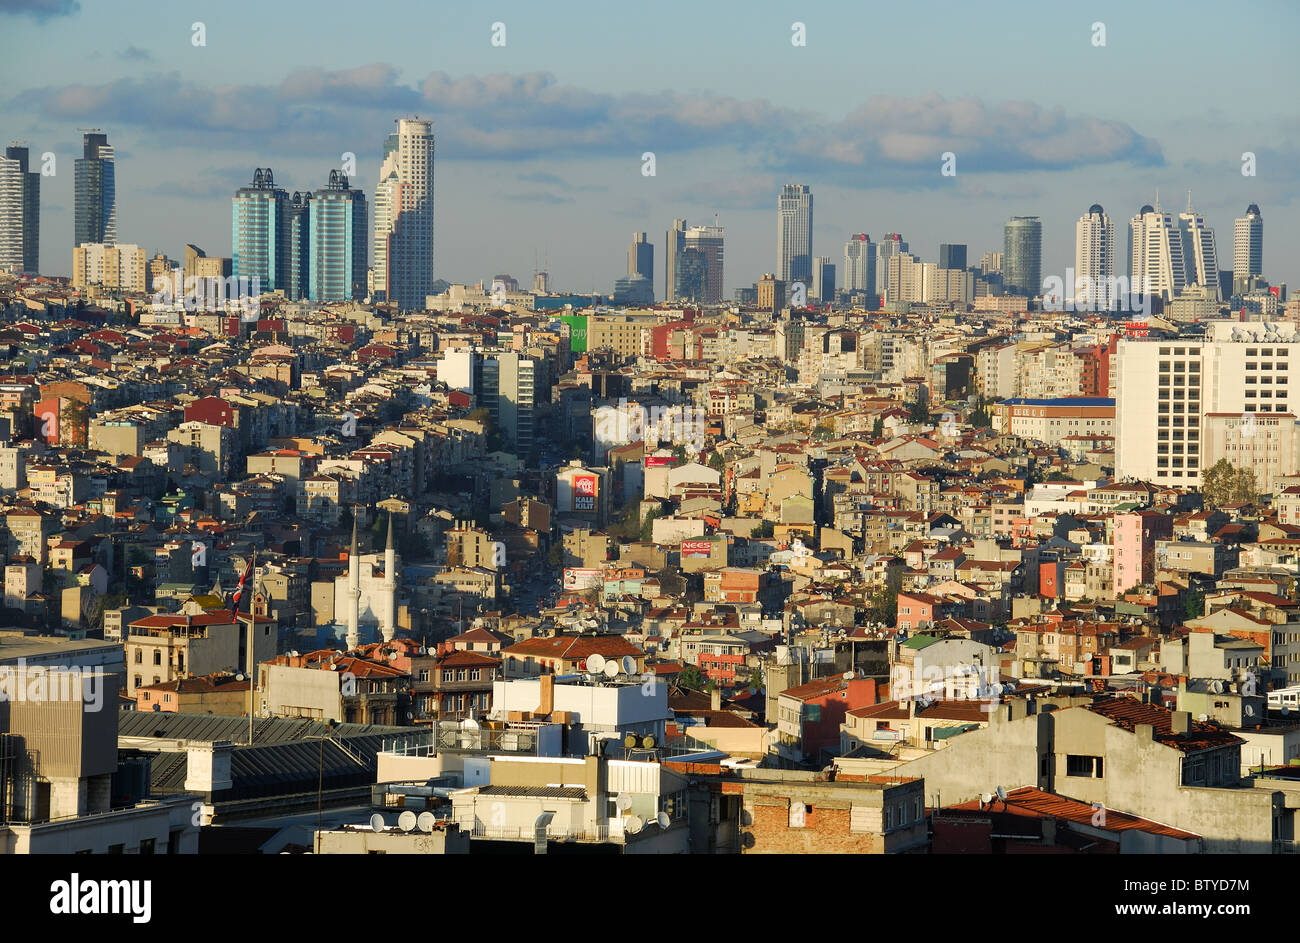 ISTANBUL, TURKEY. An evening view over Beyoglu towards the business and financial districts of Sisli and Levent. - Stock Image